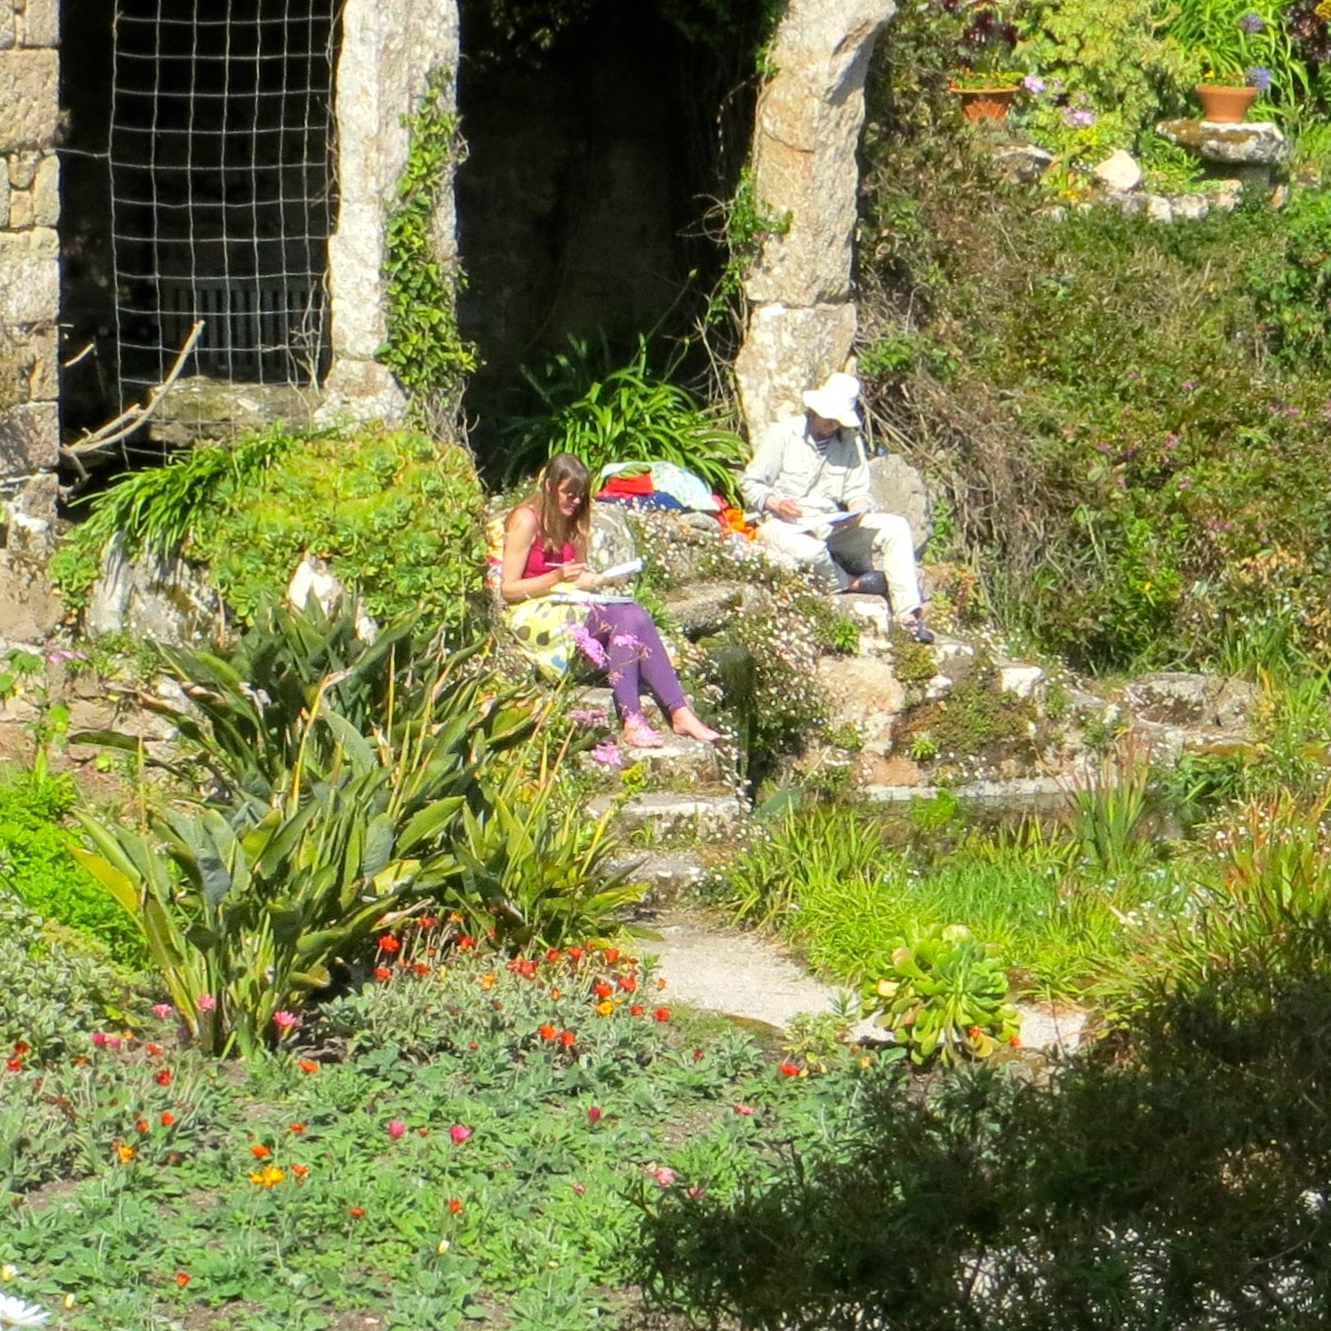 Cornish artists Joanne Short and John Dyer painting in the Tresco Abbey Gardens in Cornwall